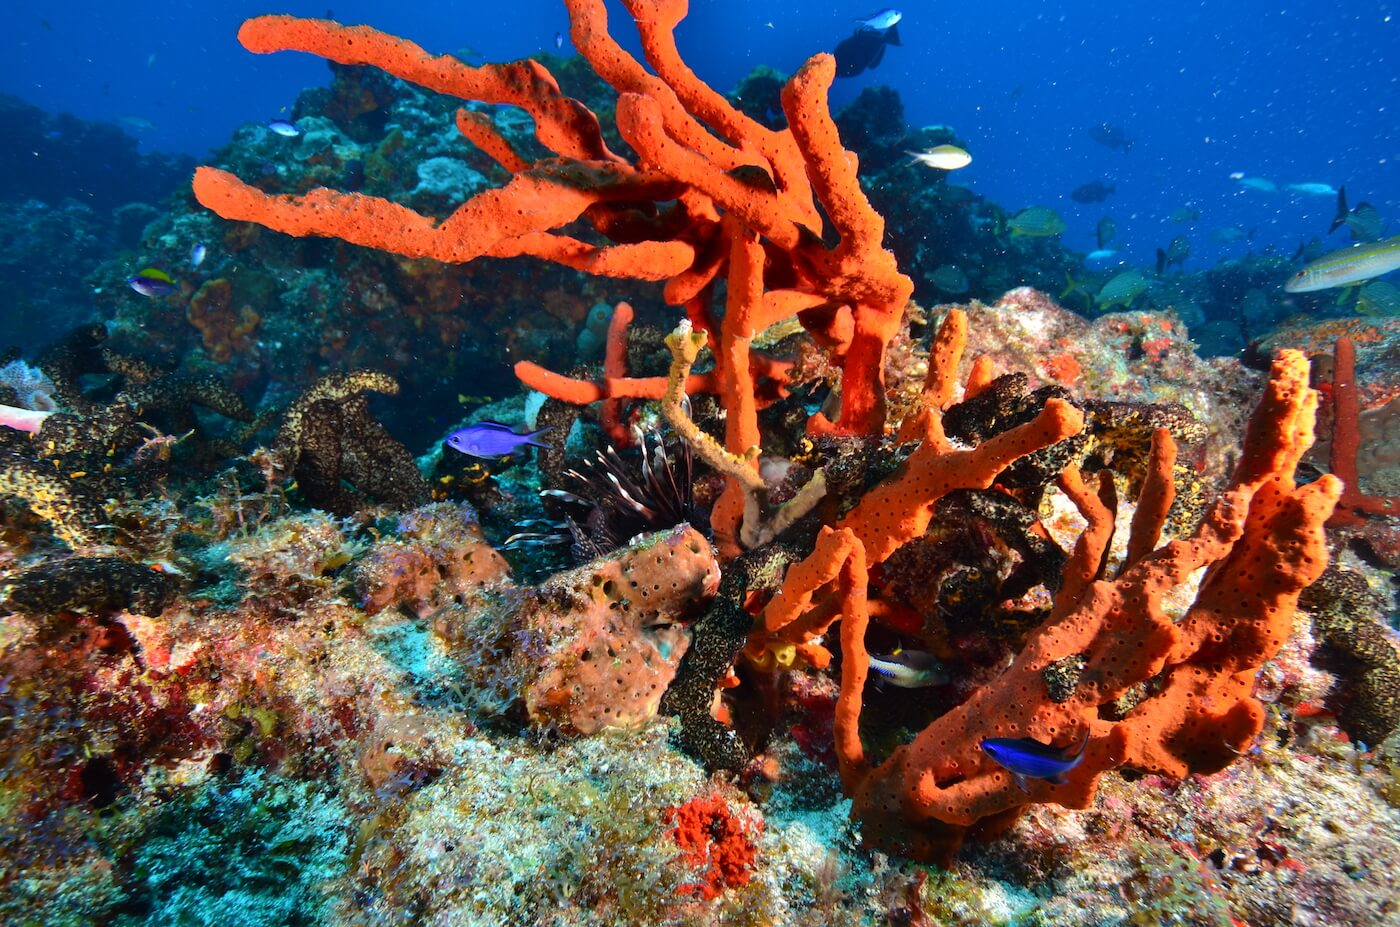 Coral-Reef-Cancun-Dive-Center-Caribbean-Connections-4